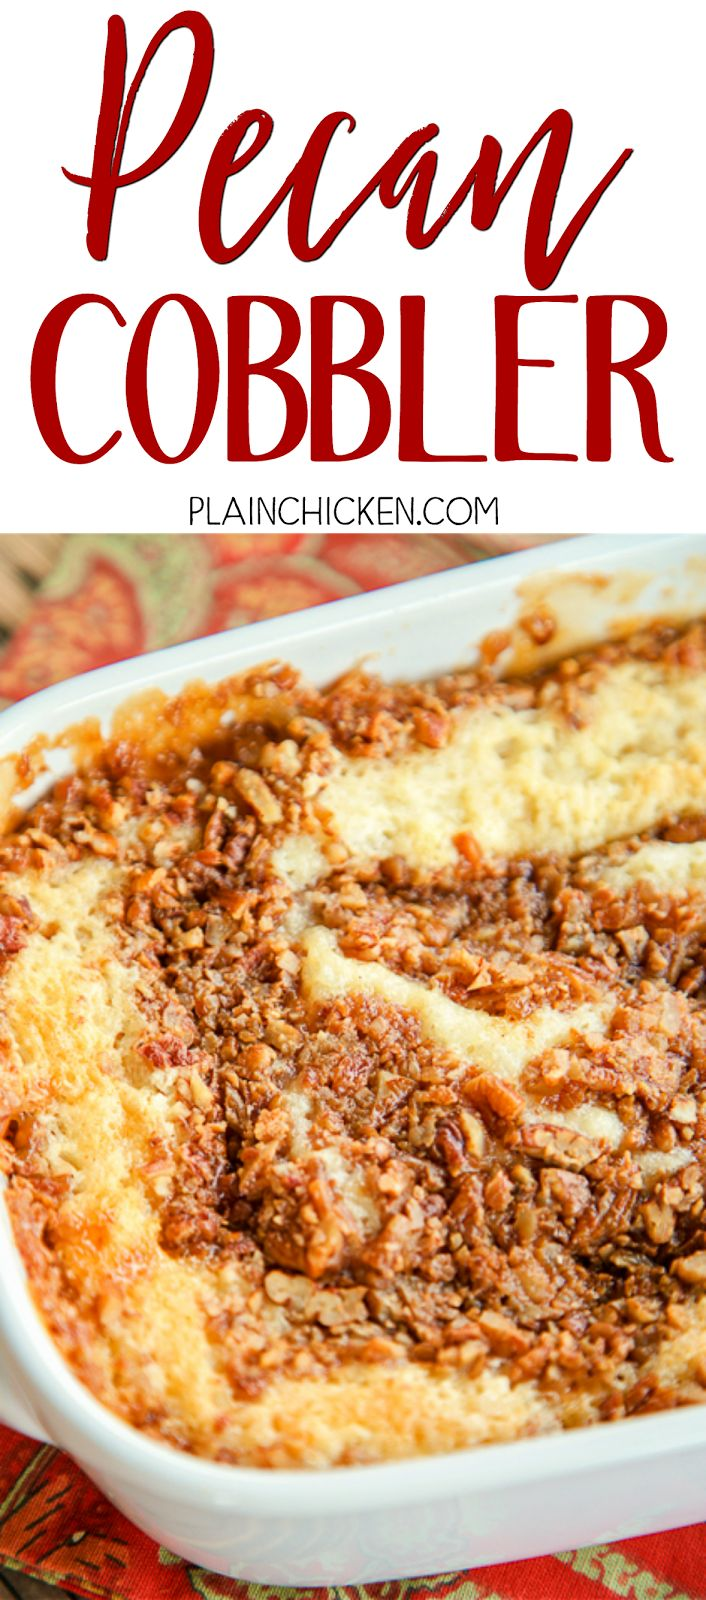 Pecan Cobbler - THE BEST dessert ever! Magically makes an amazing sauce as it bakes. Butter, flour, sugar, milk, vanilla, pecans, toffee bits and boiling water. Serve with vanilla ice cream or fresh whipped cream. Perfect for the holidays!